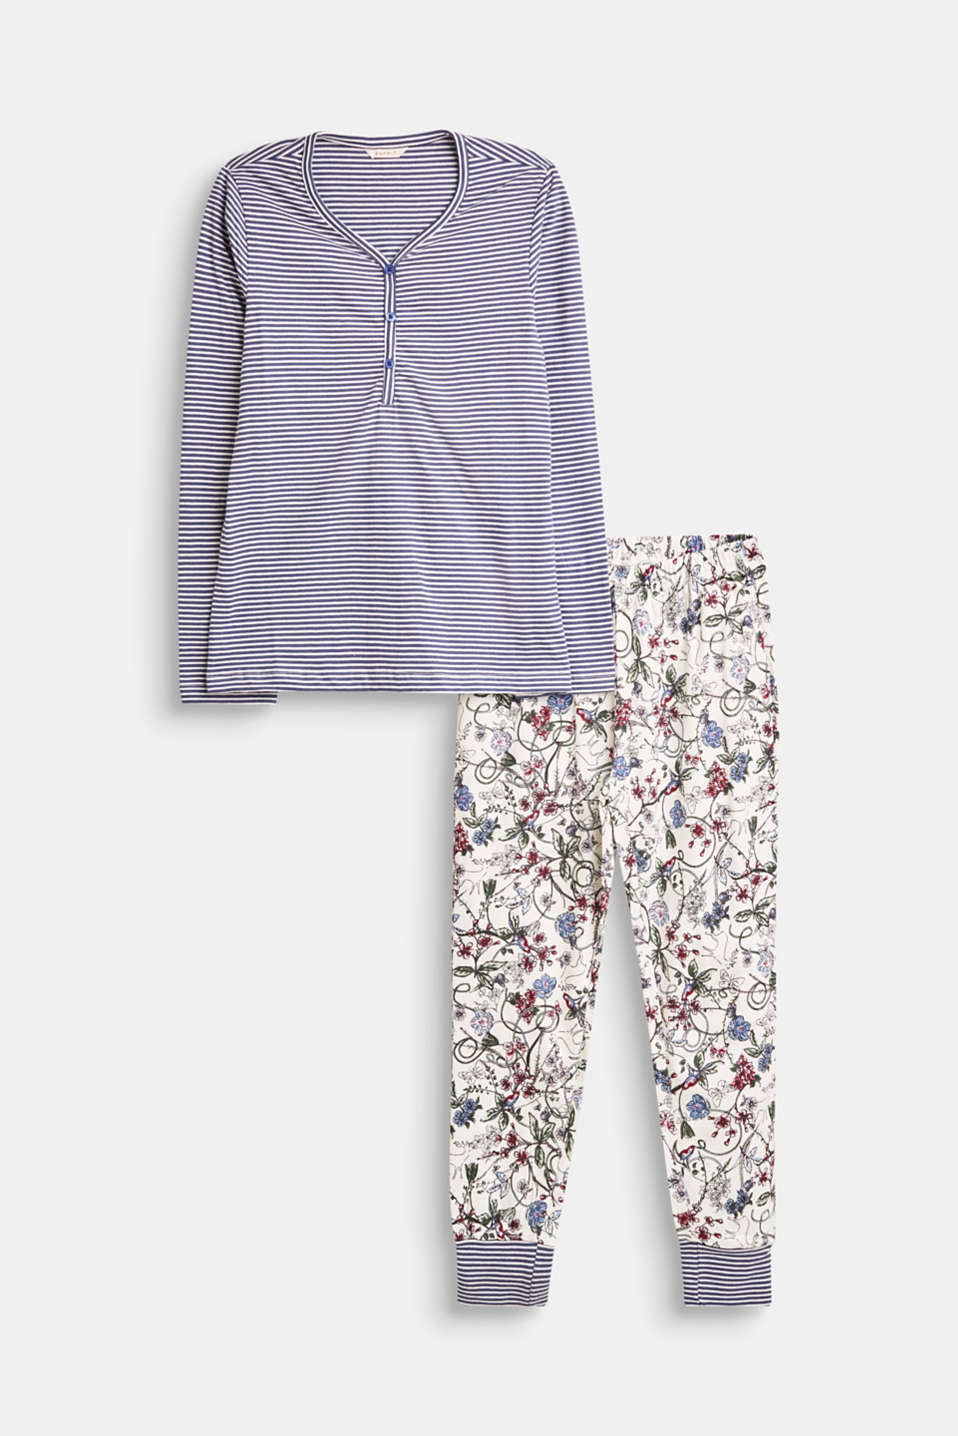 Esprit - Pyjama set with a mix of stripes and flowers, 100% cotton